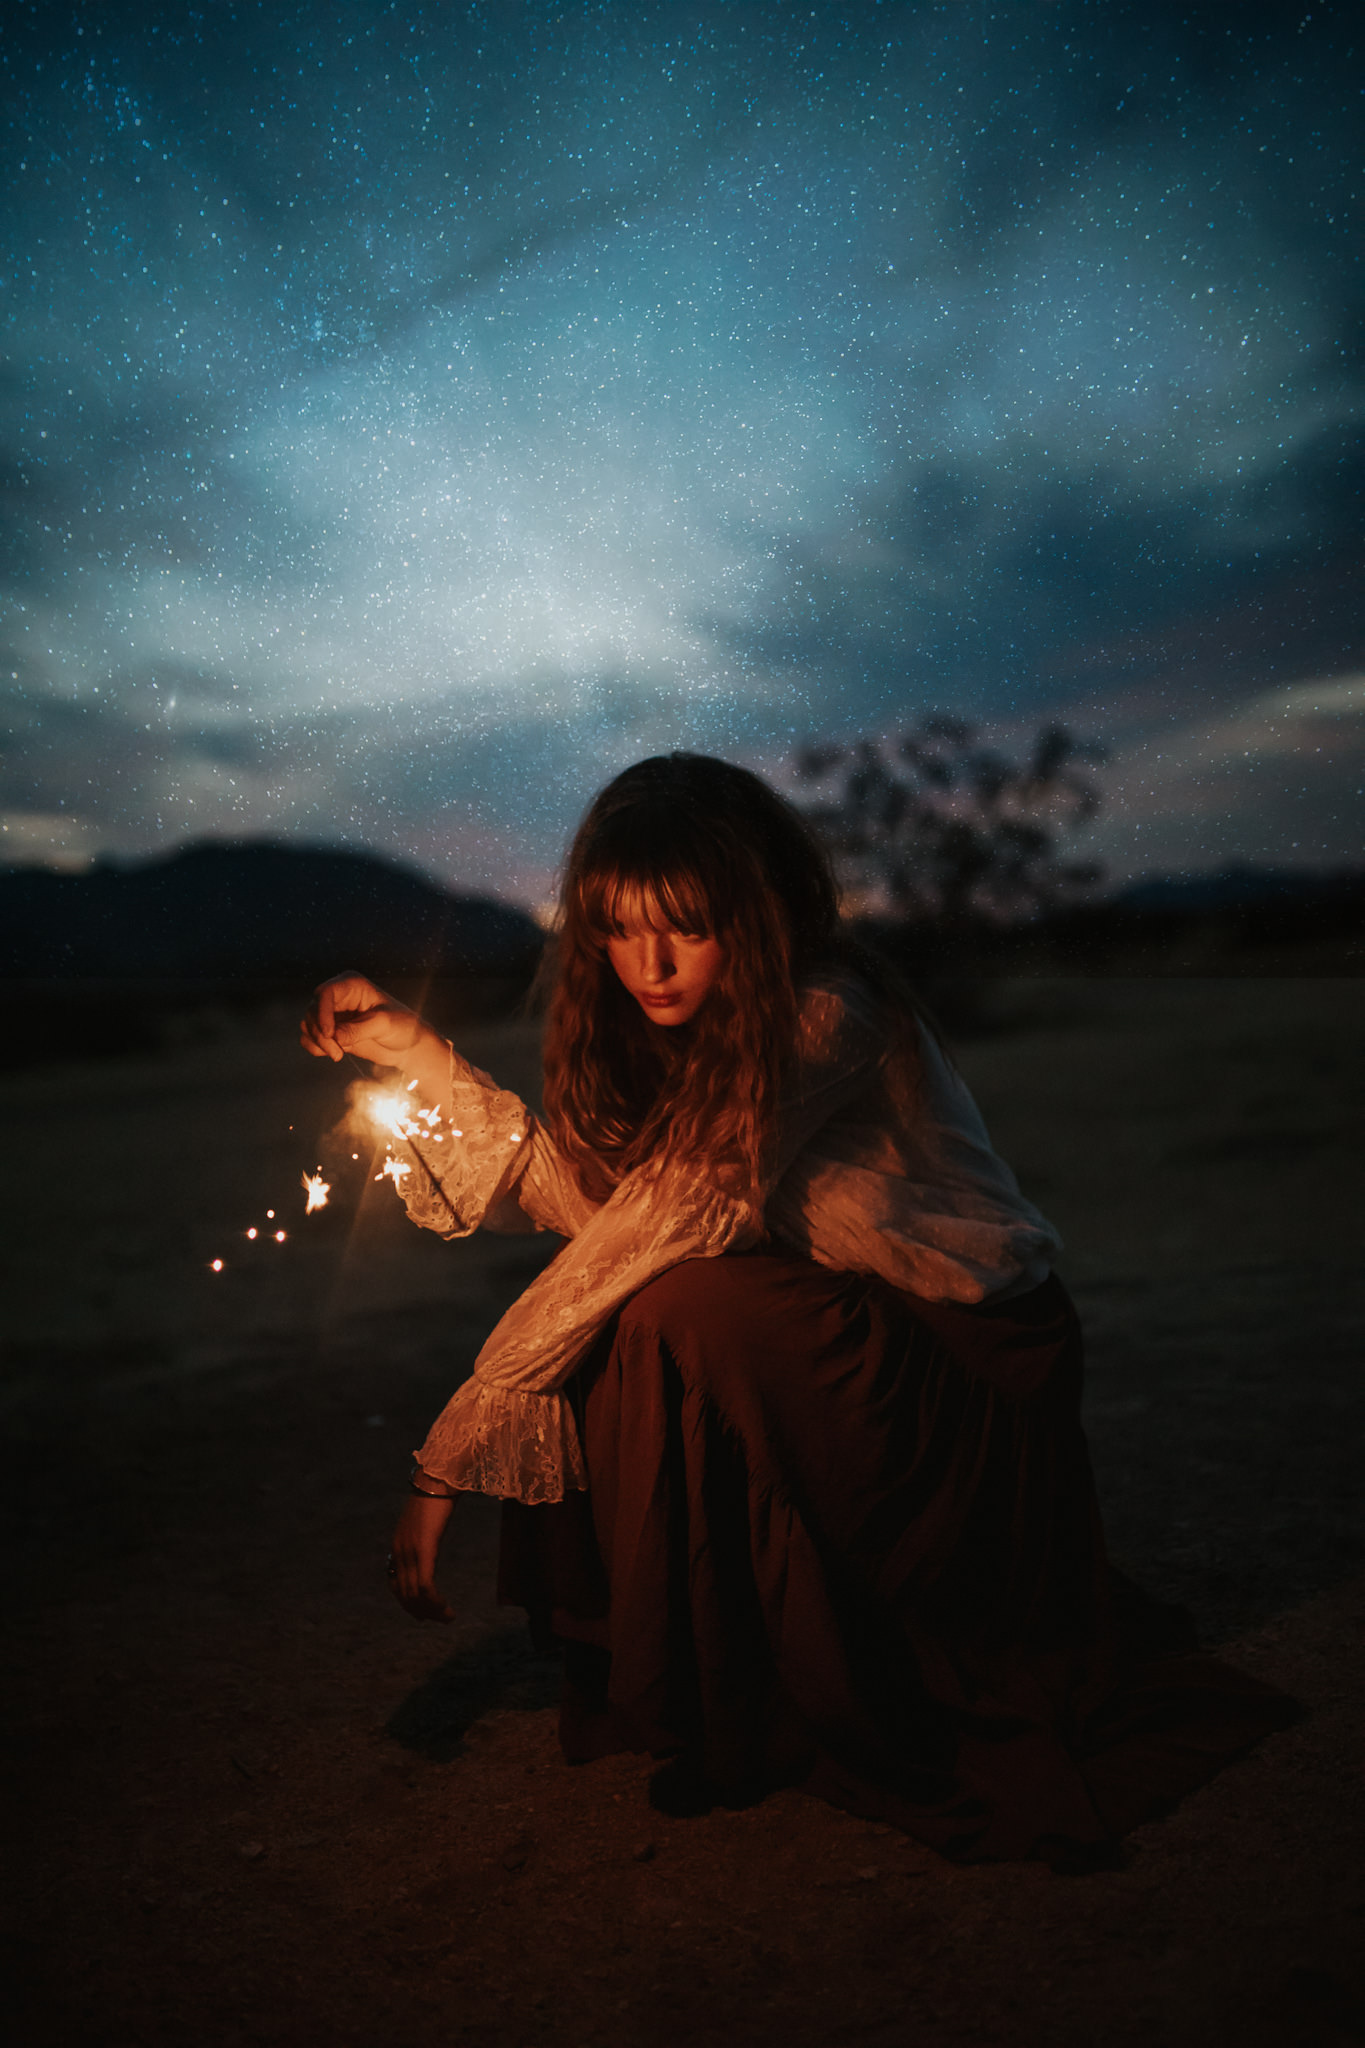 Inspiring Portrait Images You Will Love